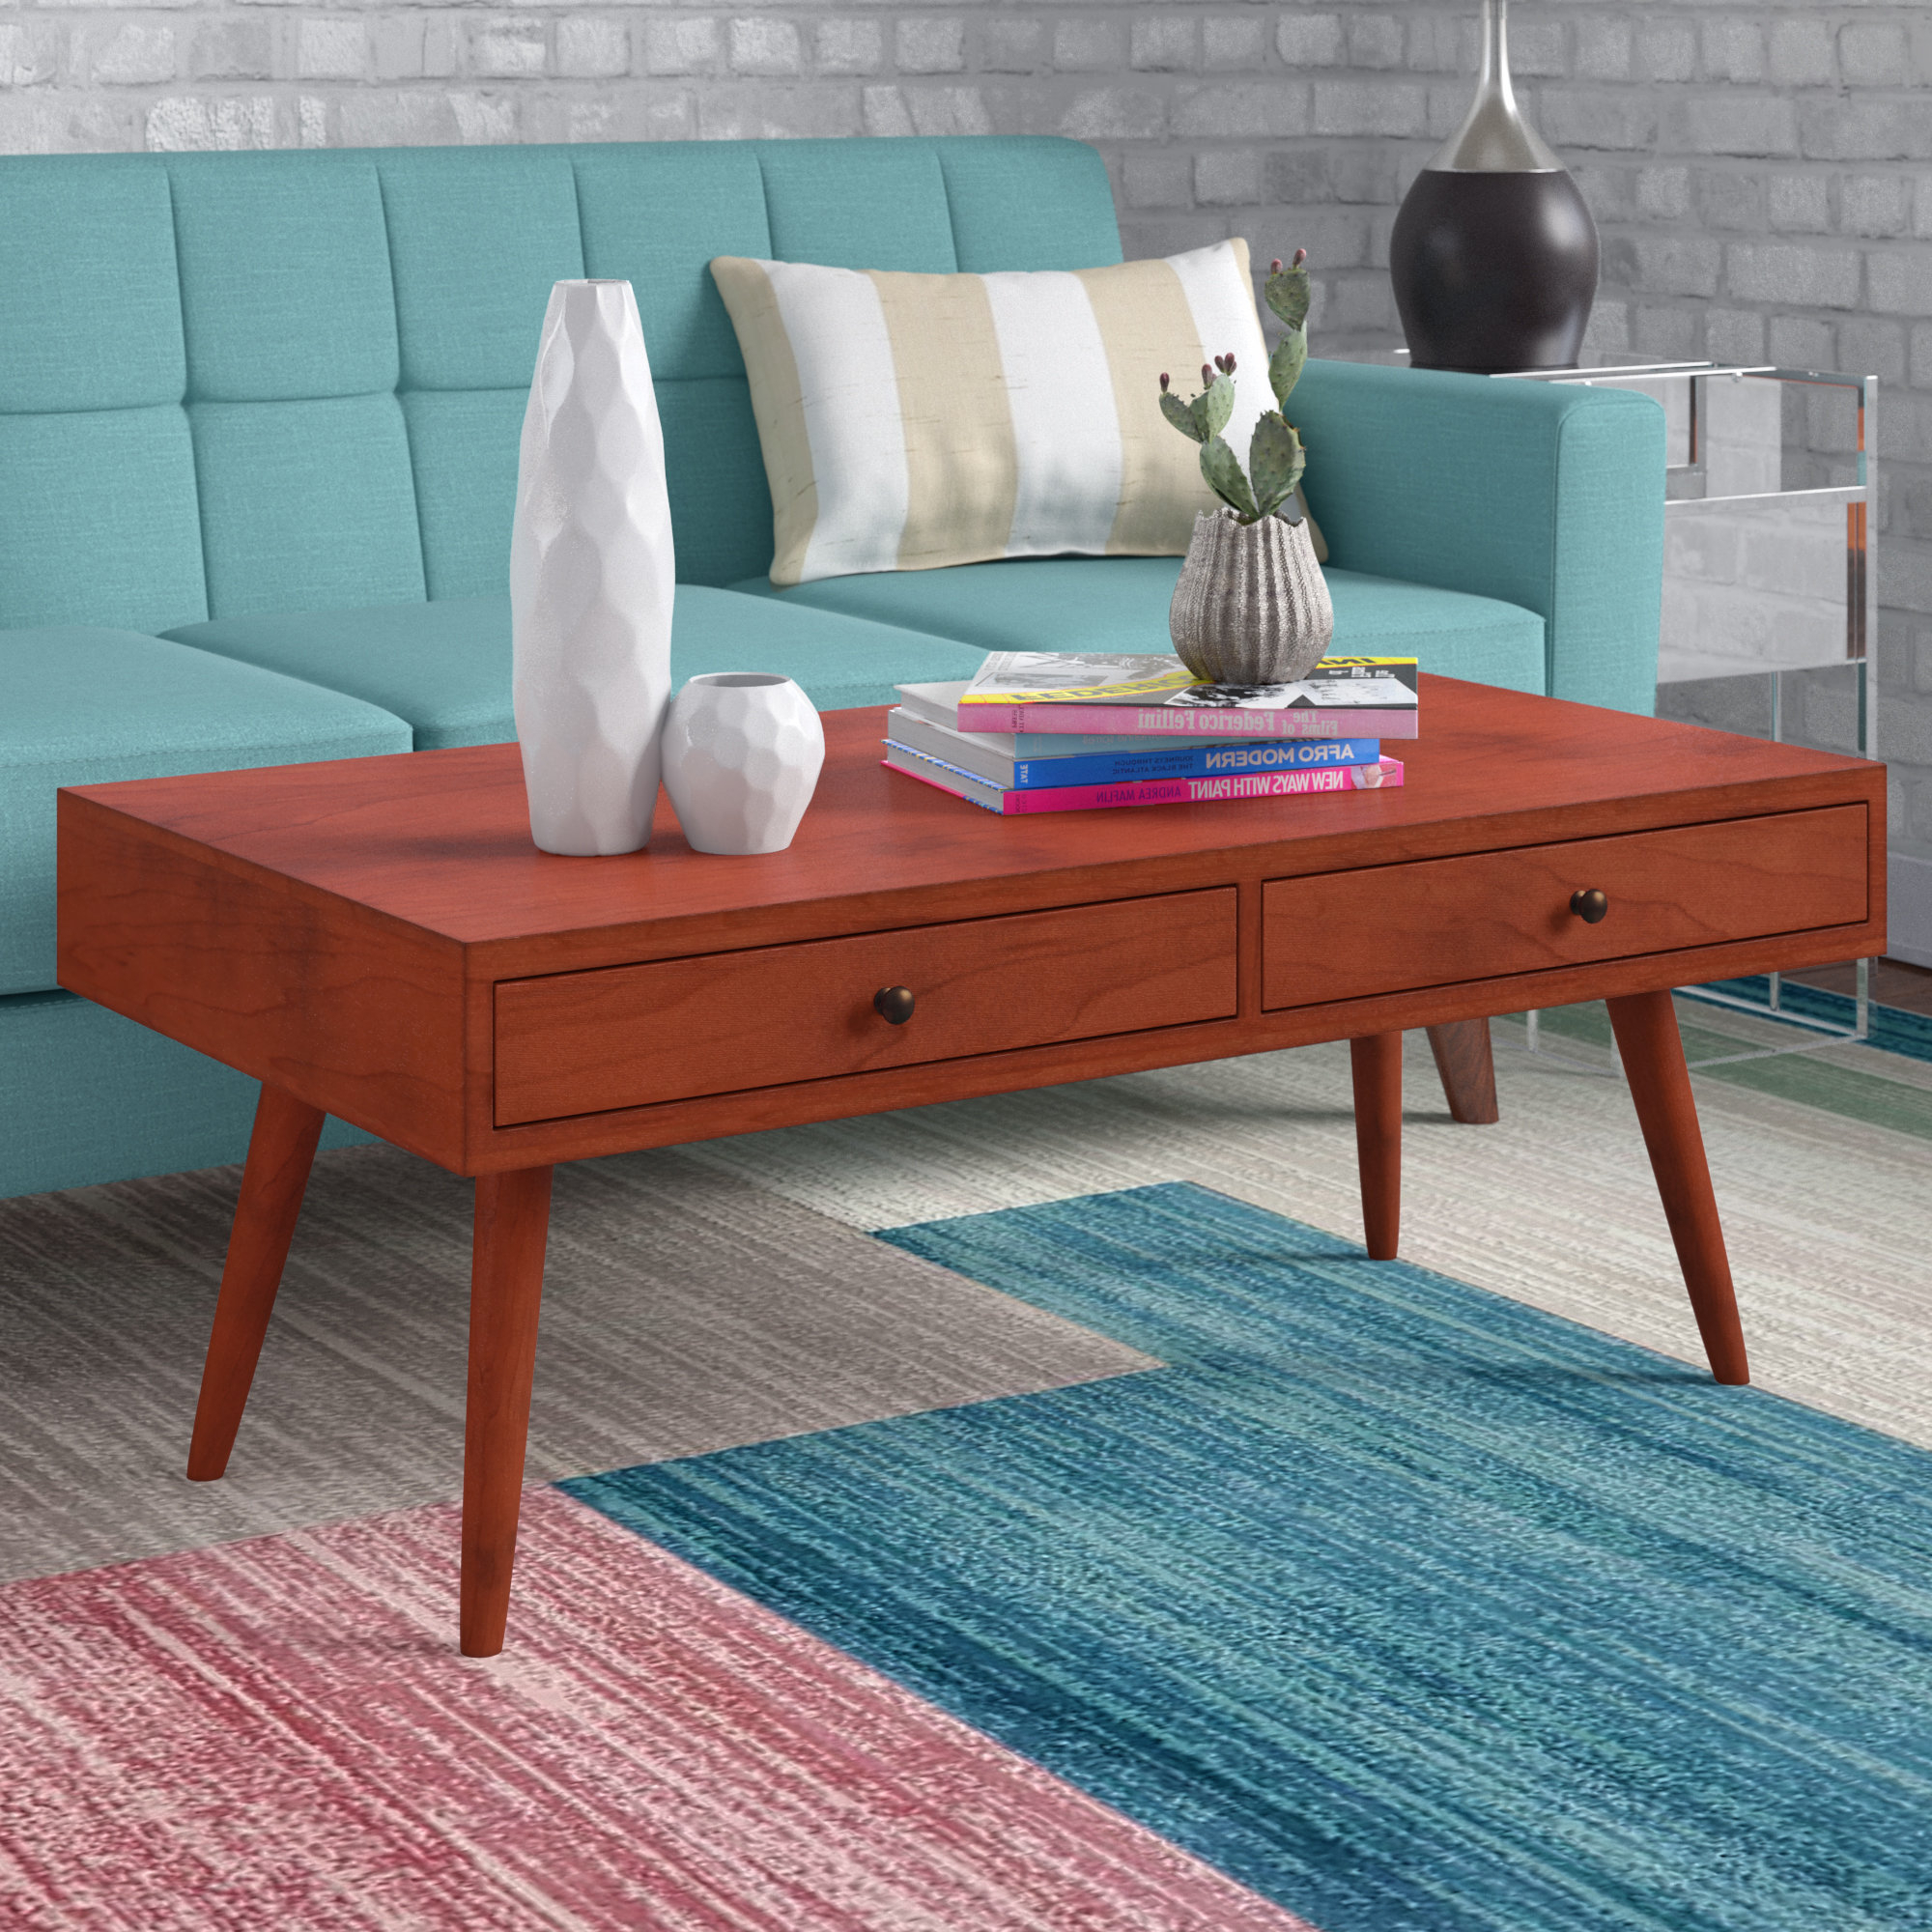 Popular Grant Lift Top Cocktail Tables With Casters In Langley Street Grant Modern Coffee Table With Storage & Reviews (Gallery 6 of 20)